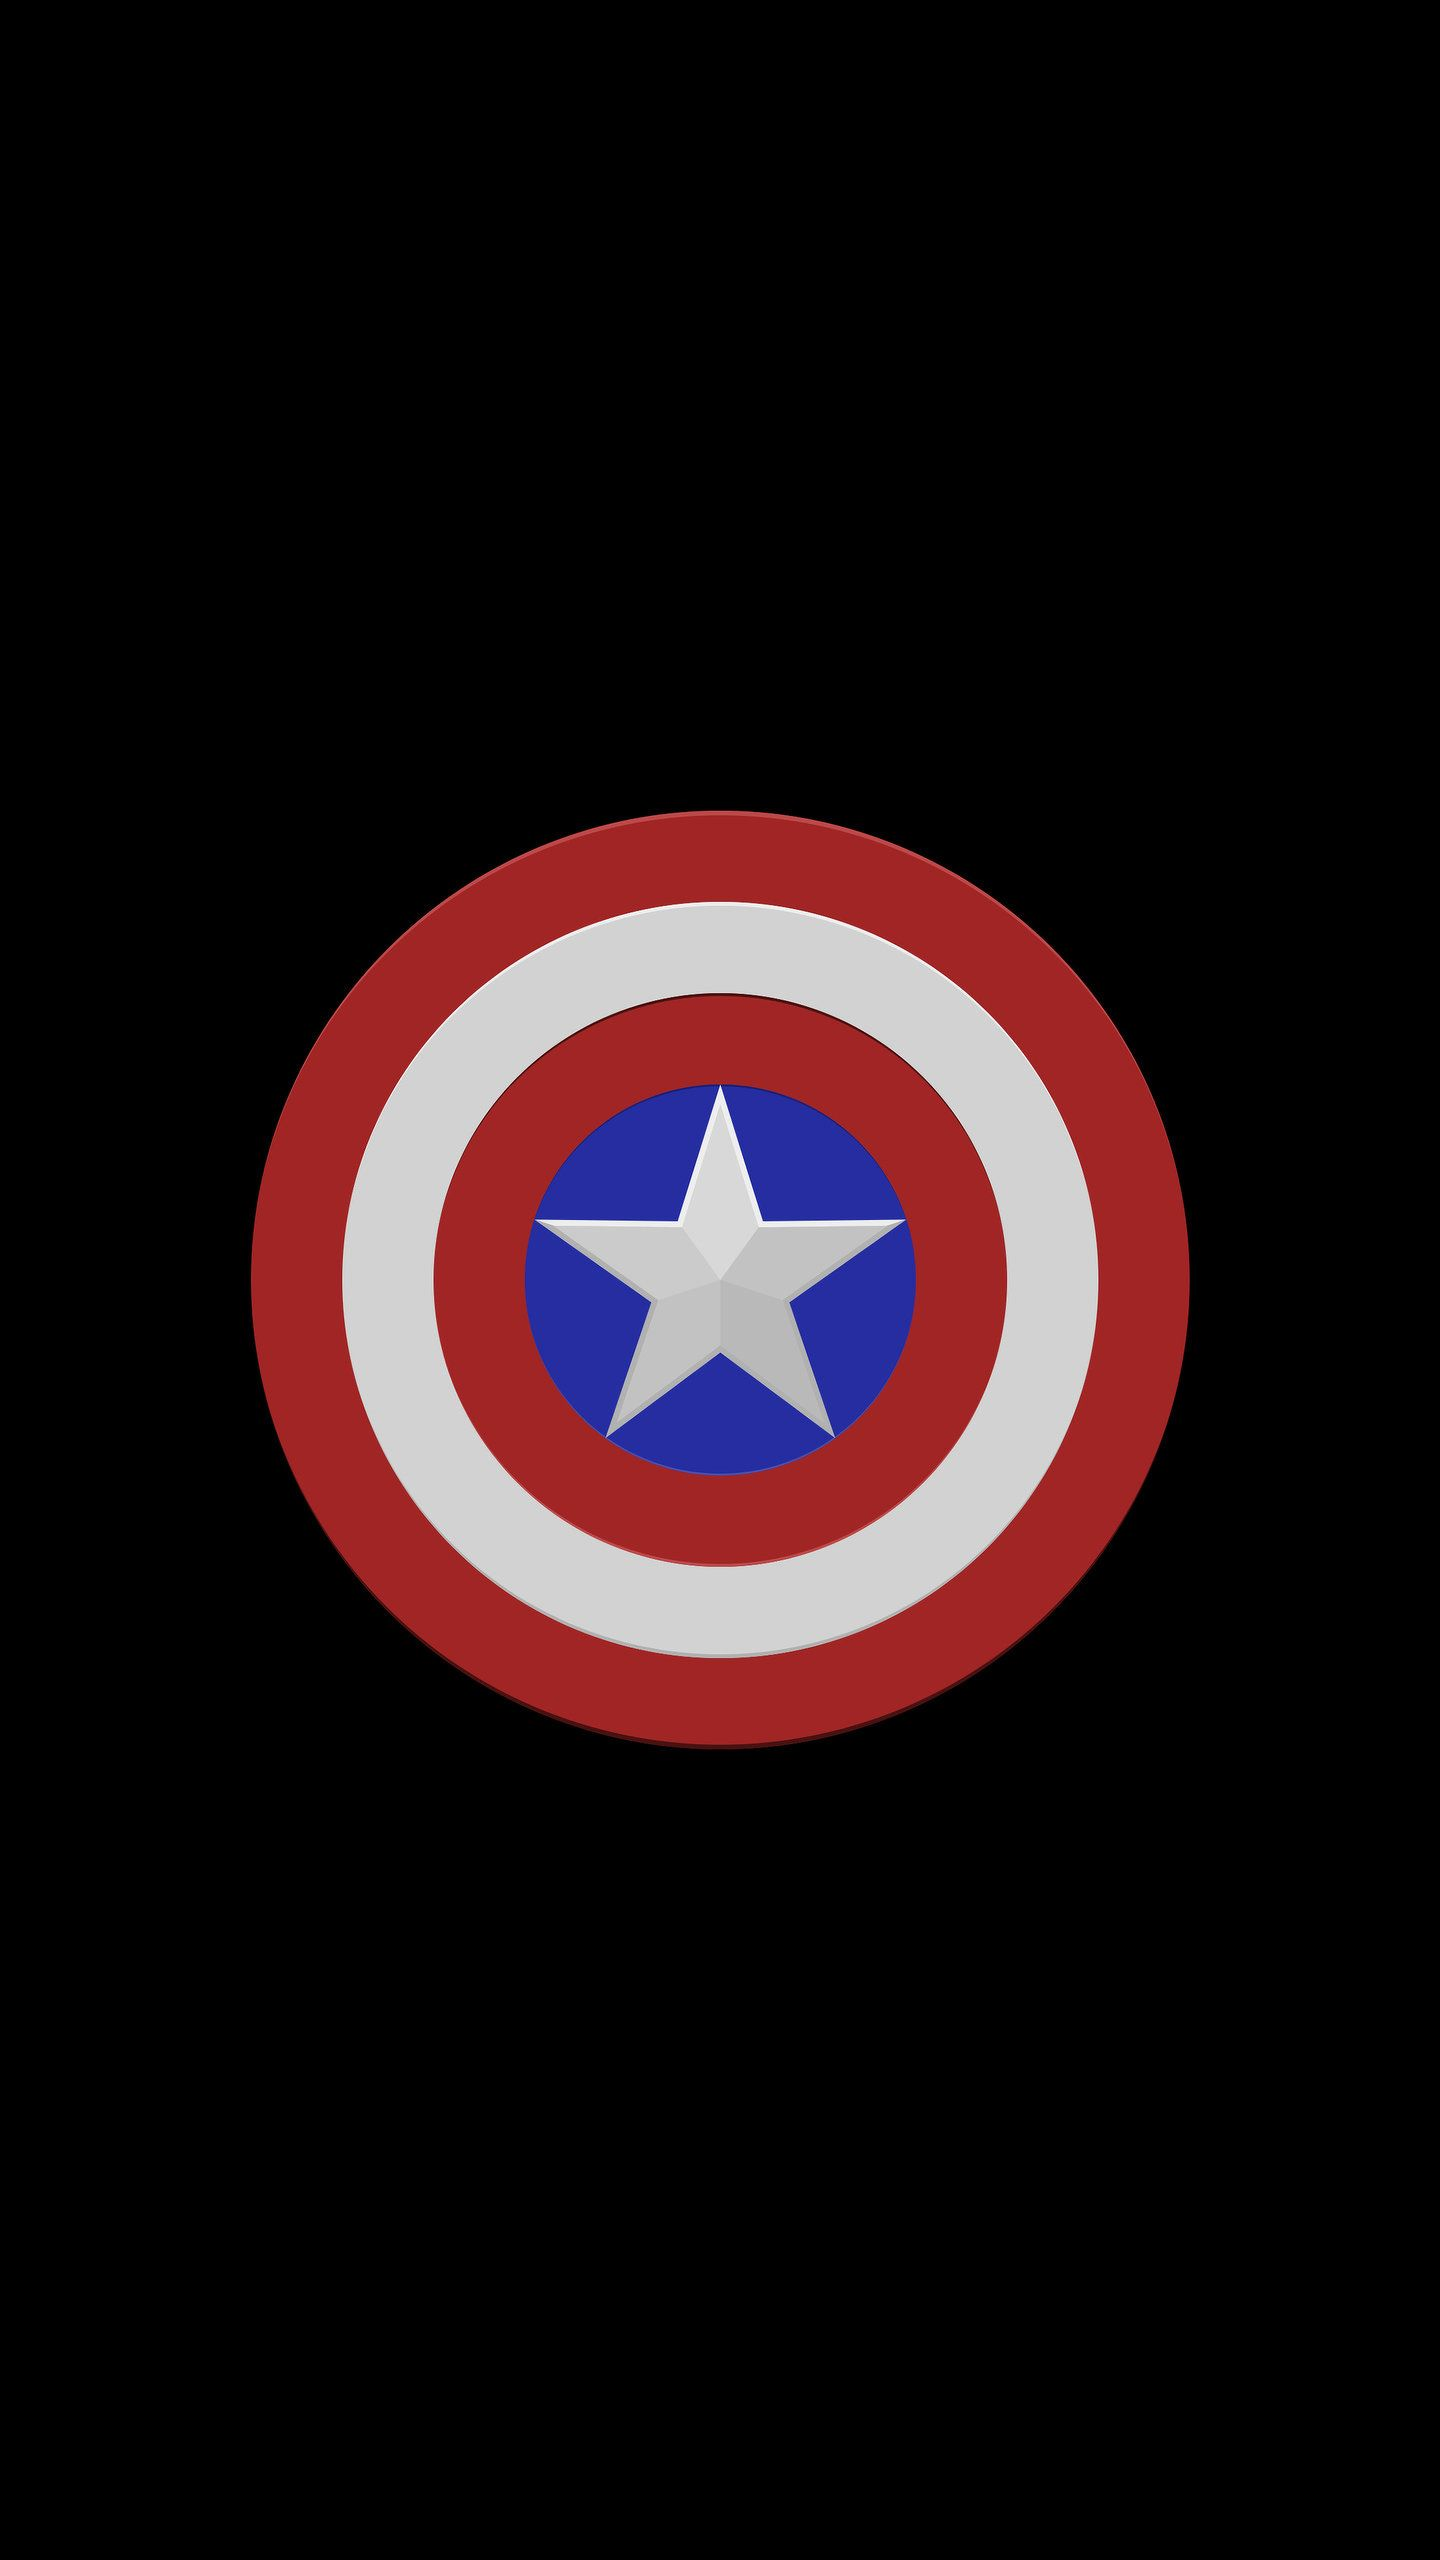 1440x2560 Wallpaper Dark Mywallpapers Site In 2020 Captain America Wallpaper Captain America Superhero Wallpaper